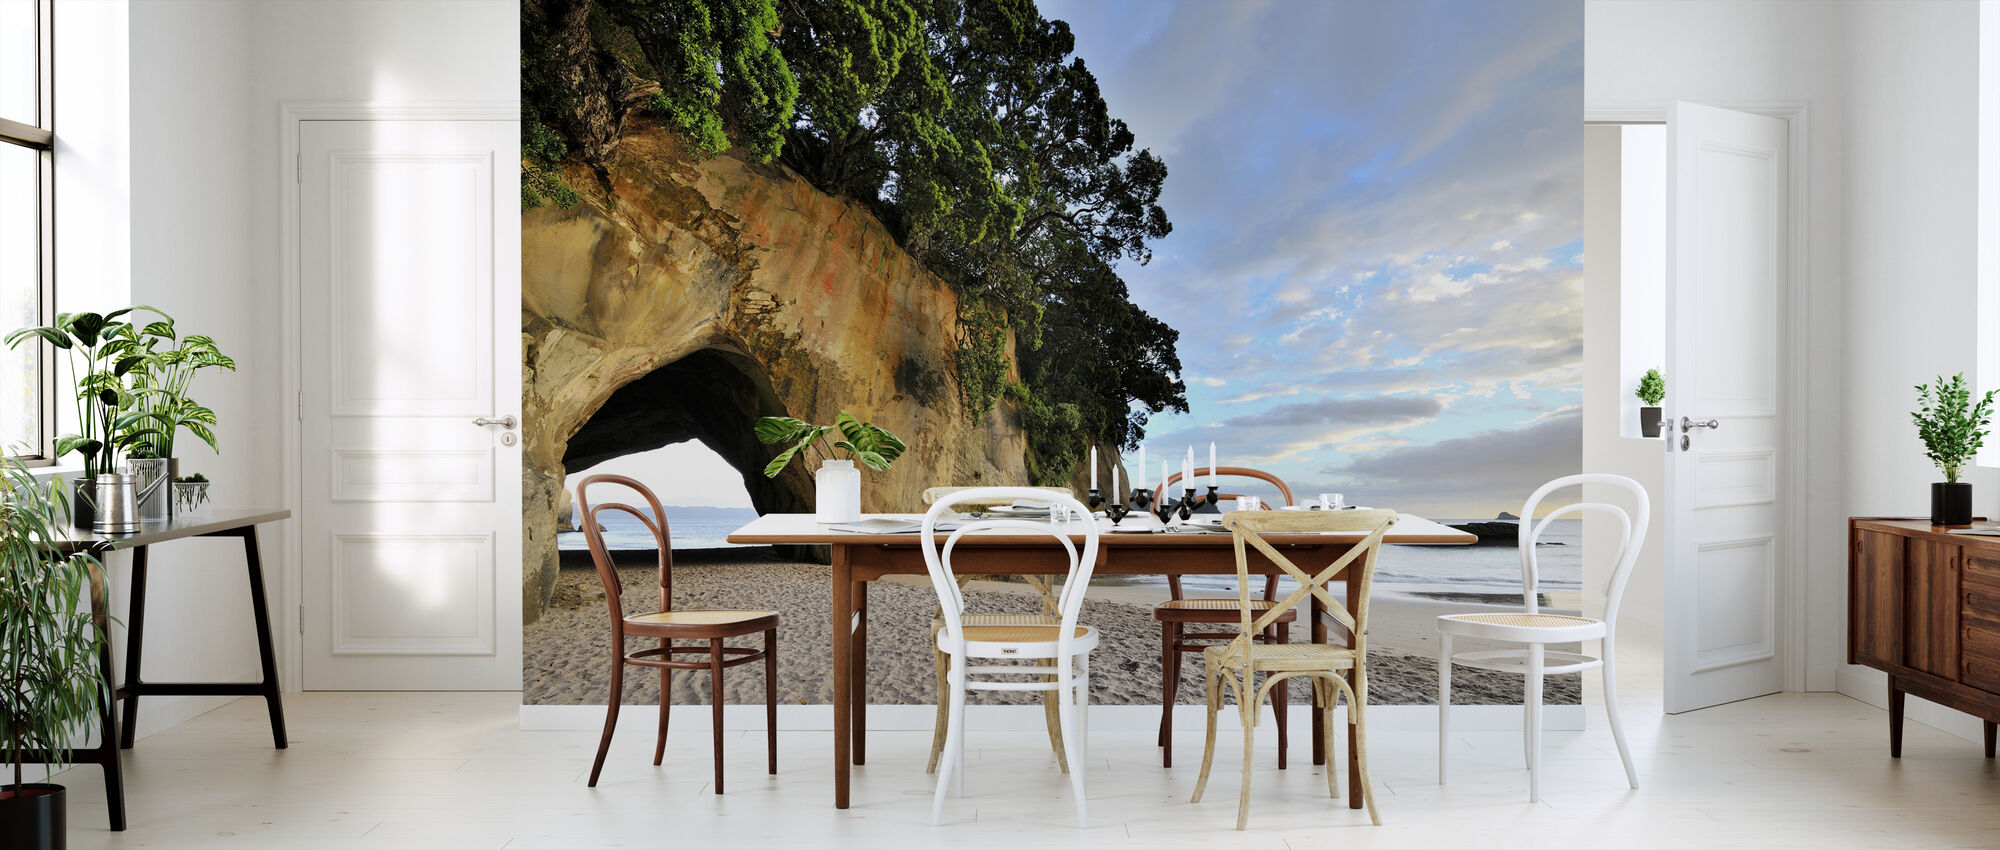 Rock Cave on the Beach - Wallpaper - Kitchen